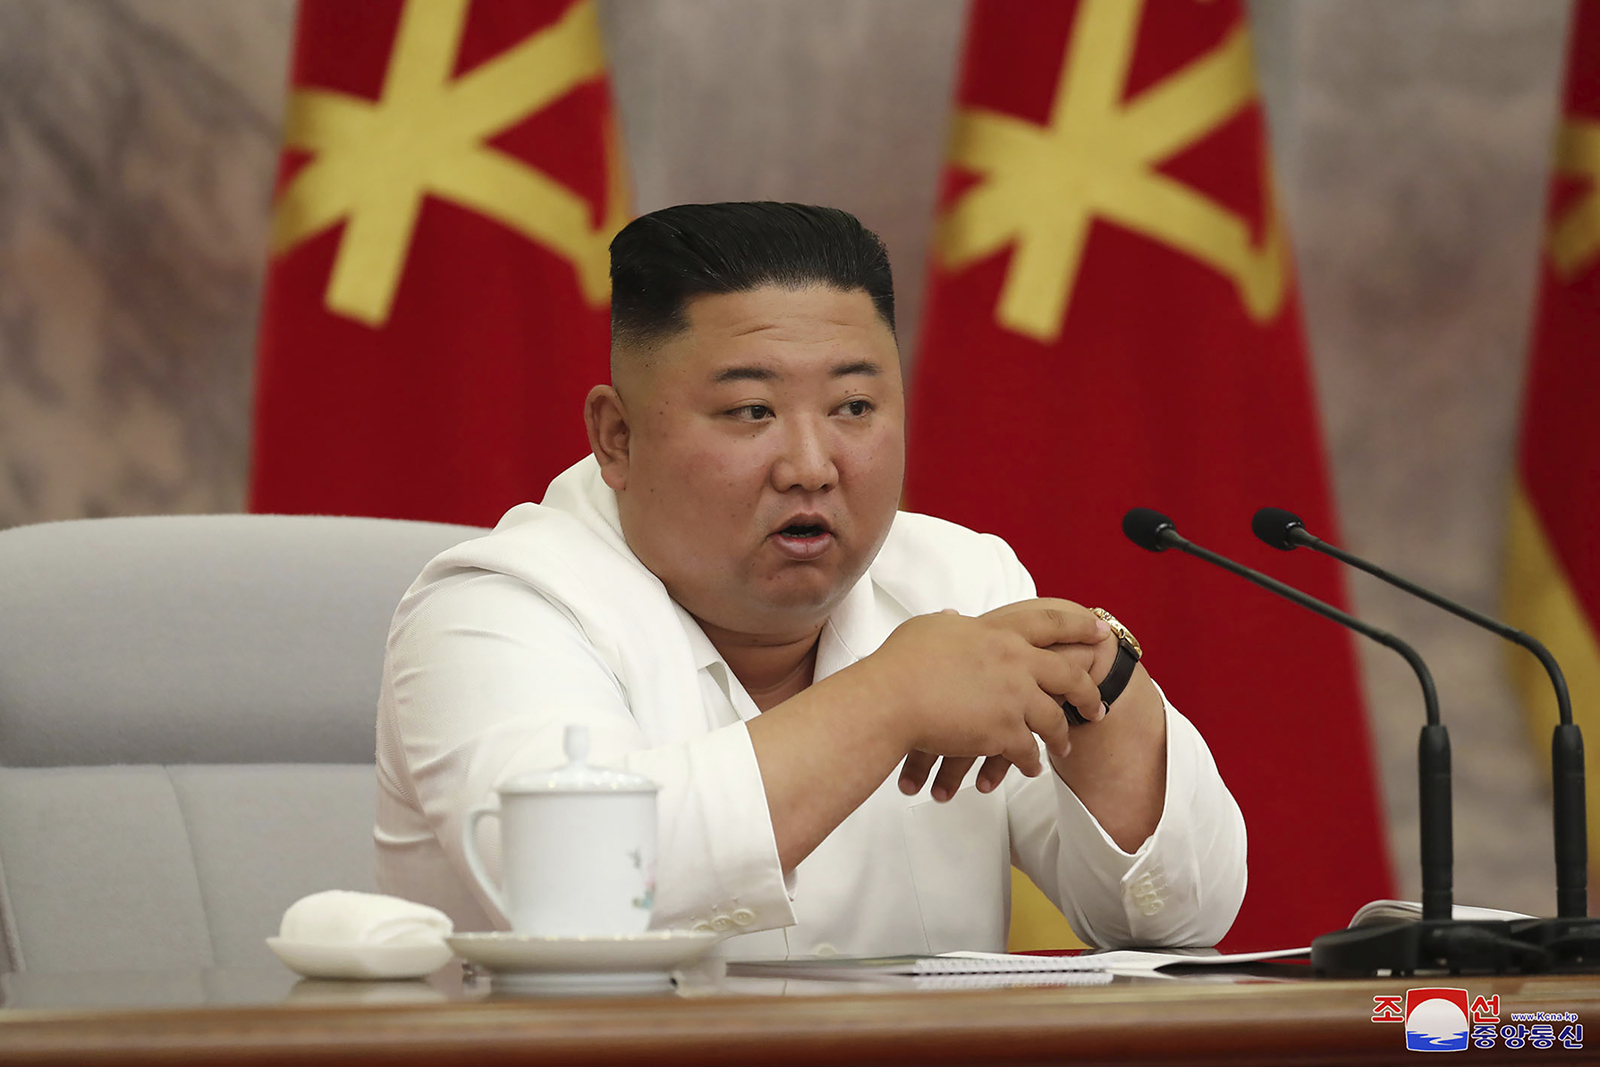 North Korean leader Kim Jong Un attends a meeting of the Central Committee of the Workers' Party of Korea in Pyongyang, on Thursday, June 2.